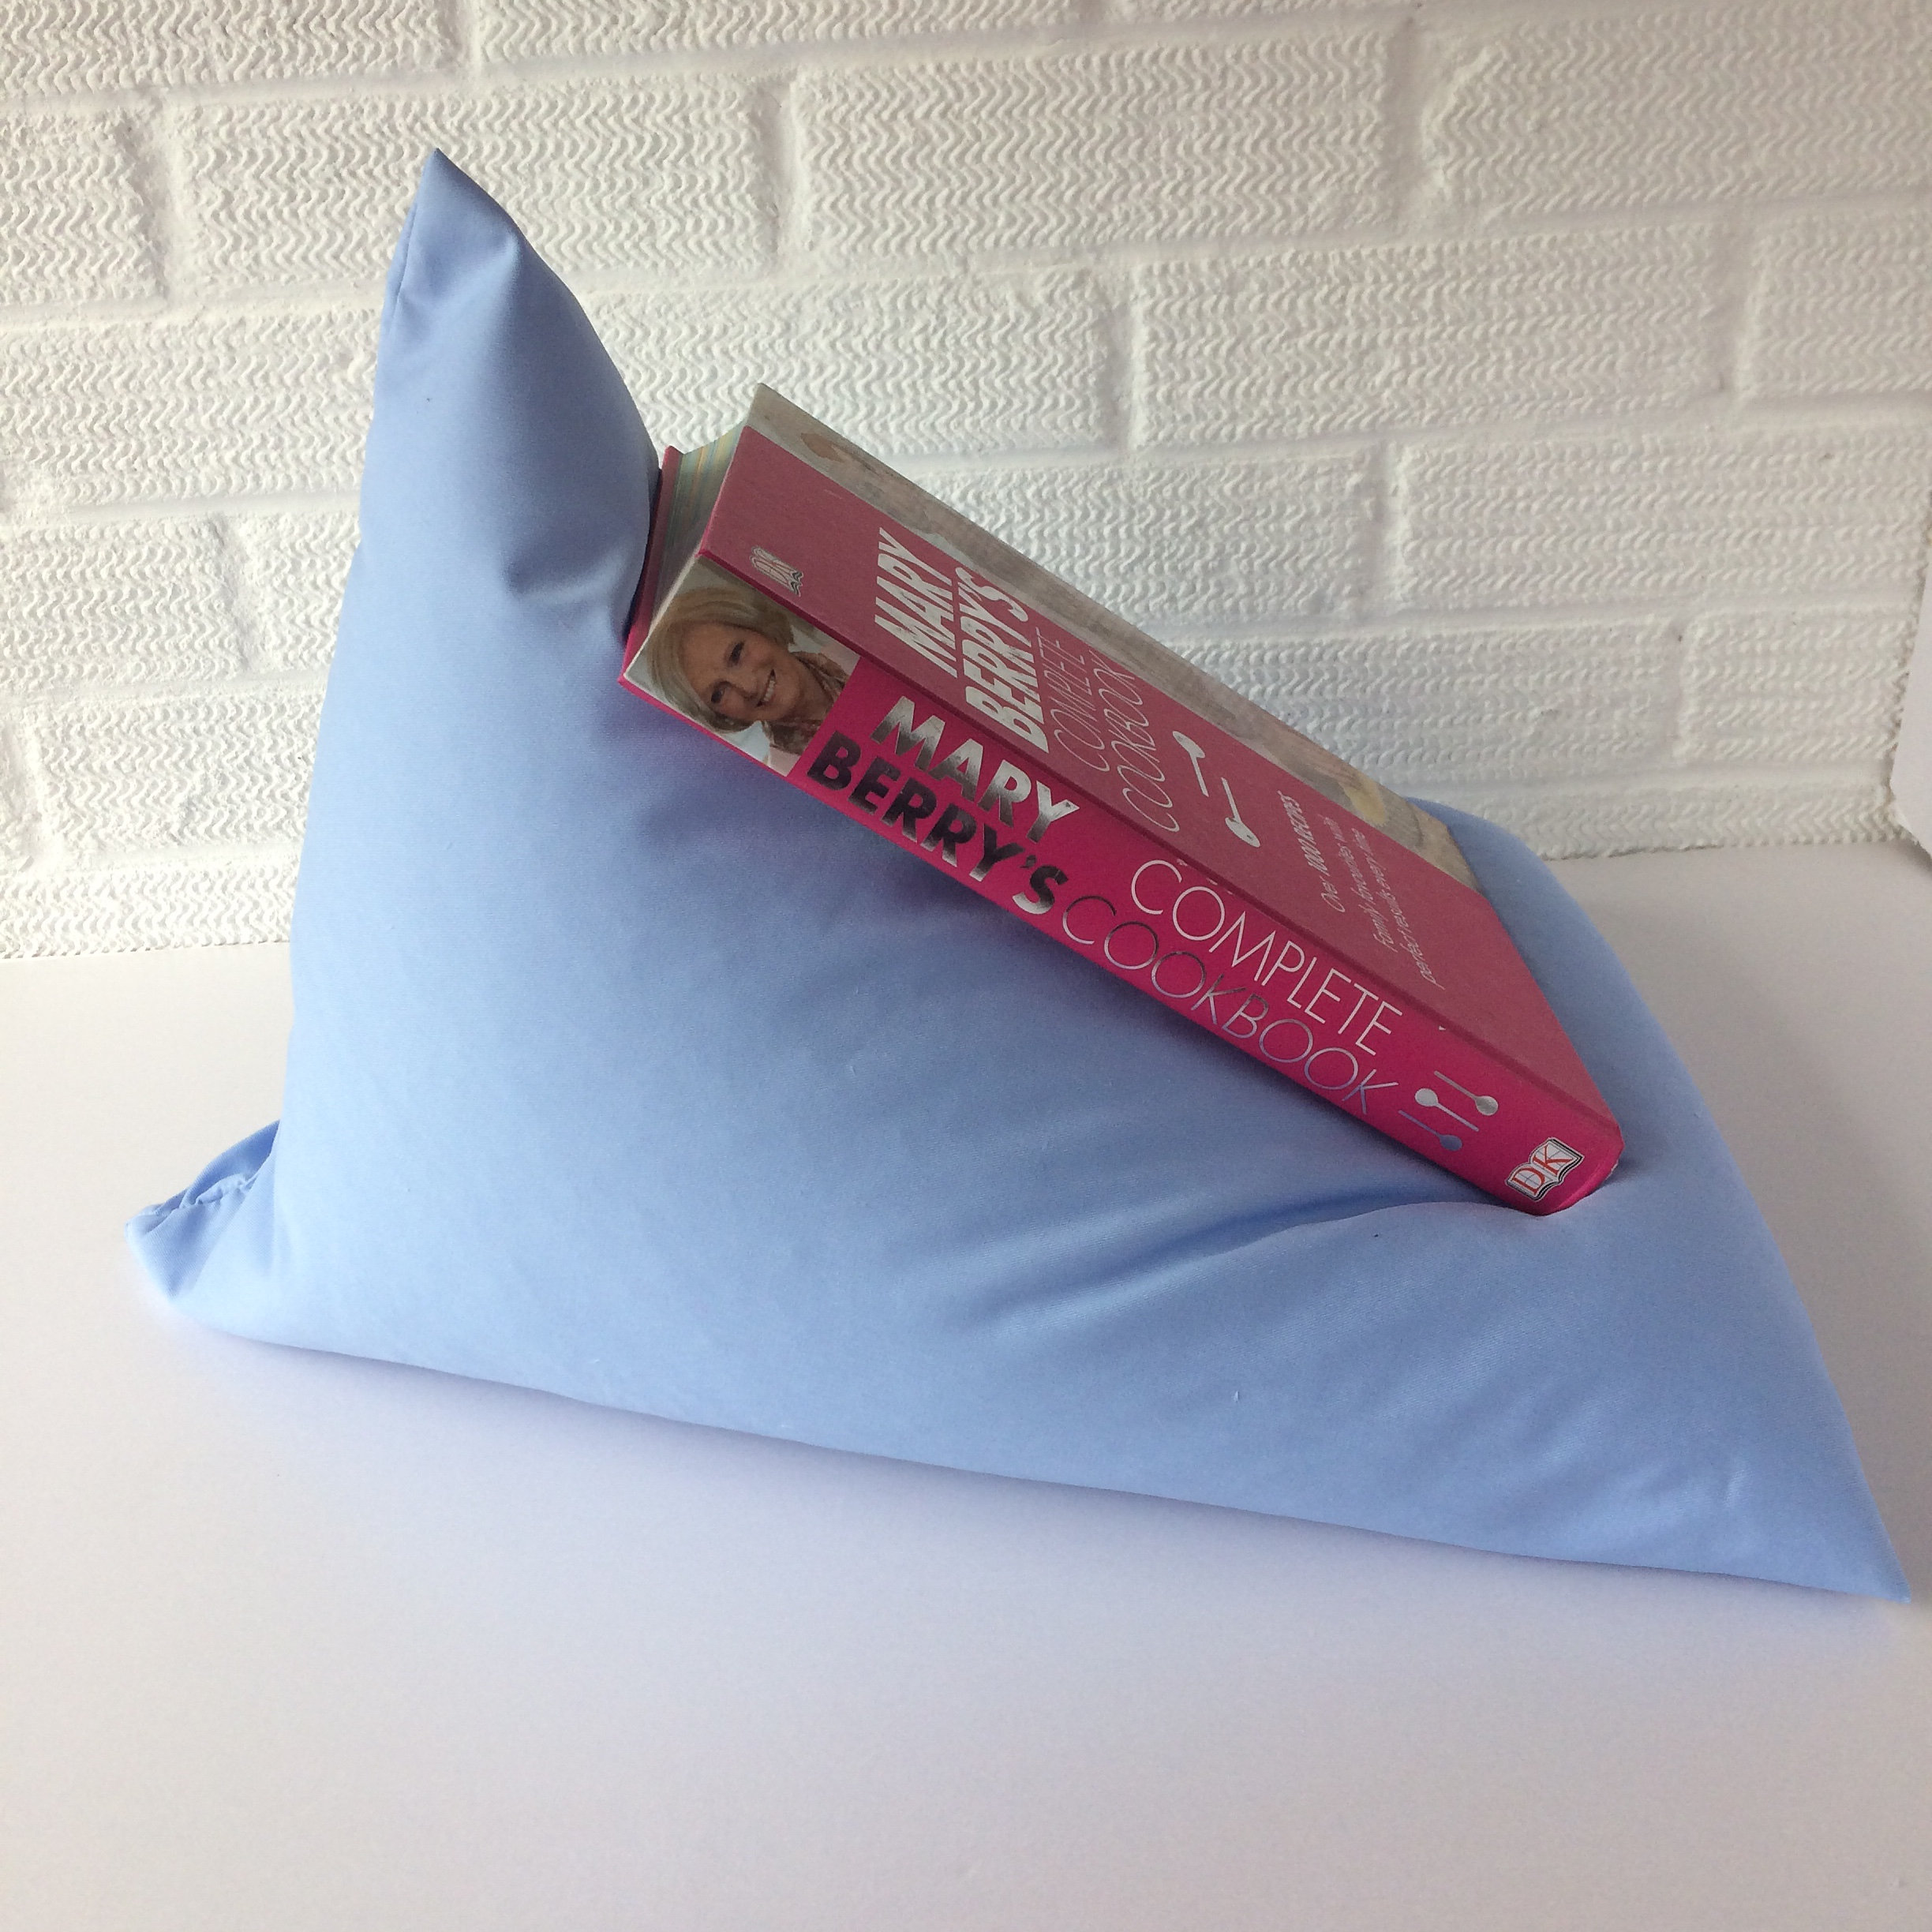 fabric notions ts ipswich may hem uk book holder or